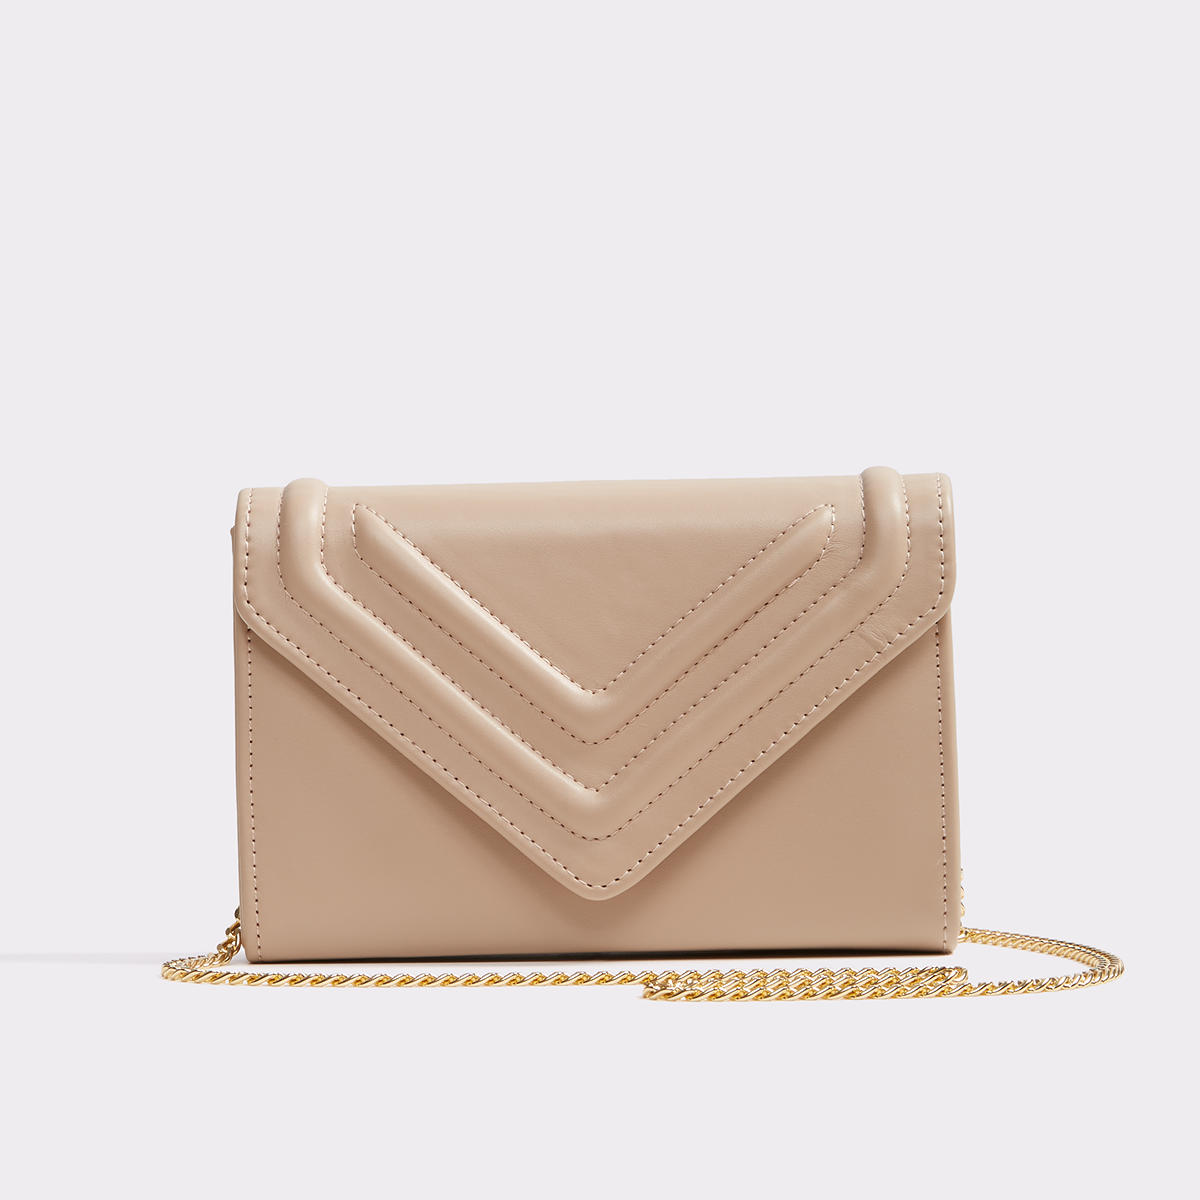 Pauliarbarei Natural Women's Clutches & evening | ALDO US at Aldo Shoes in Victor, NY | Tuggl